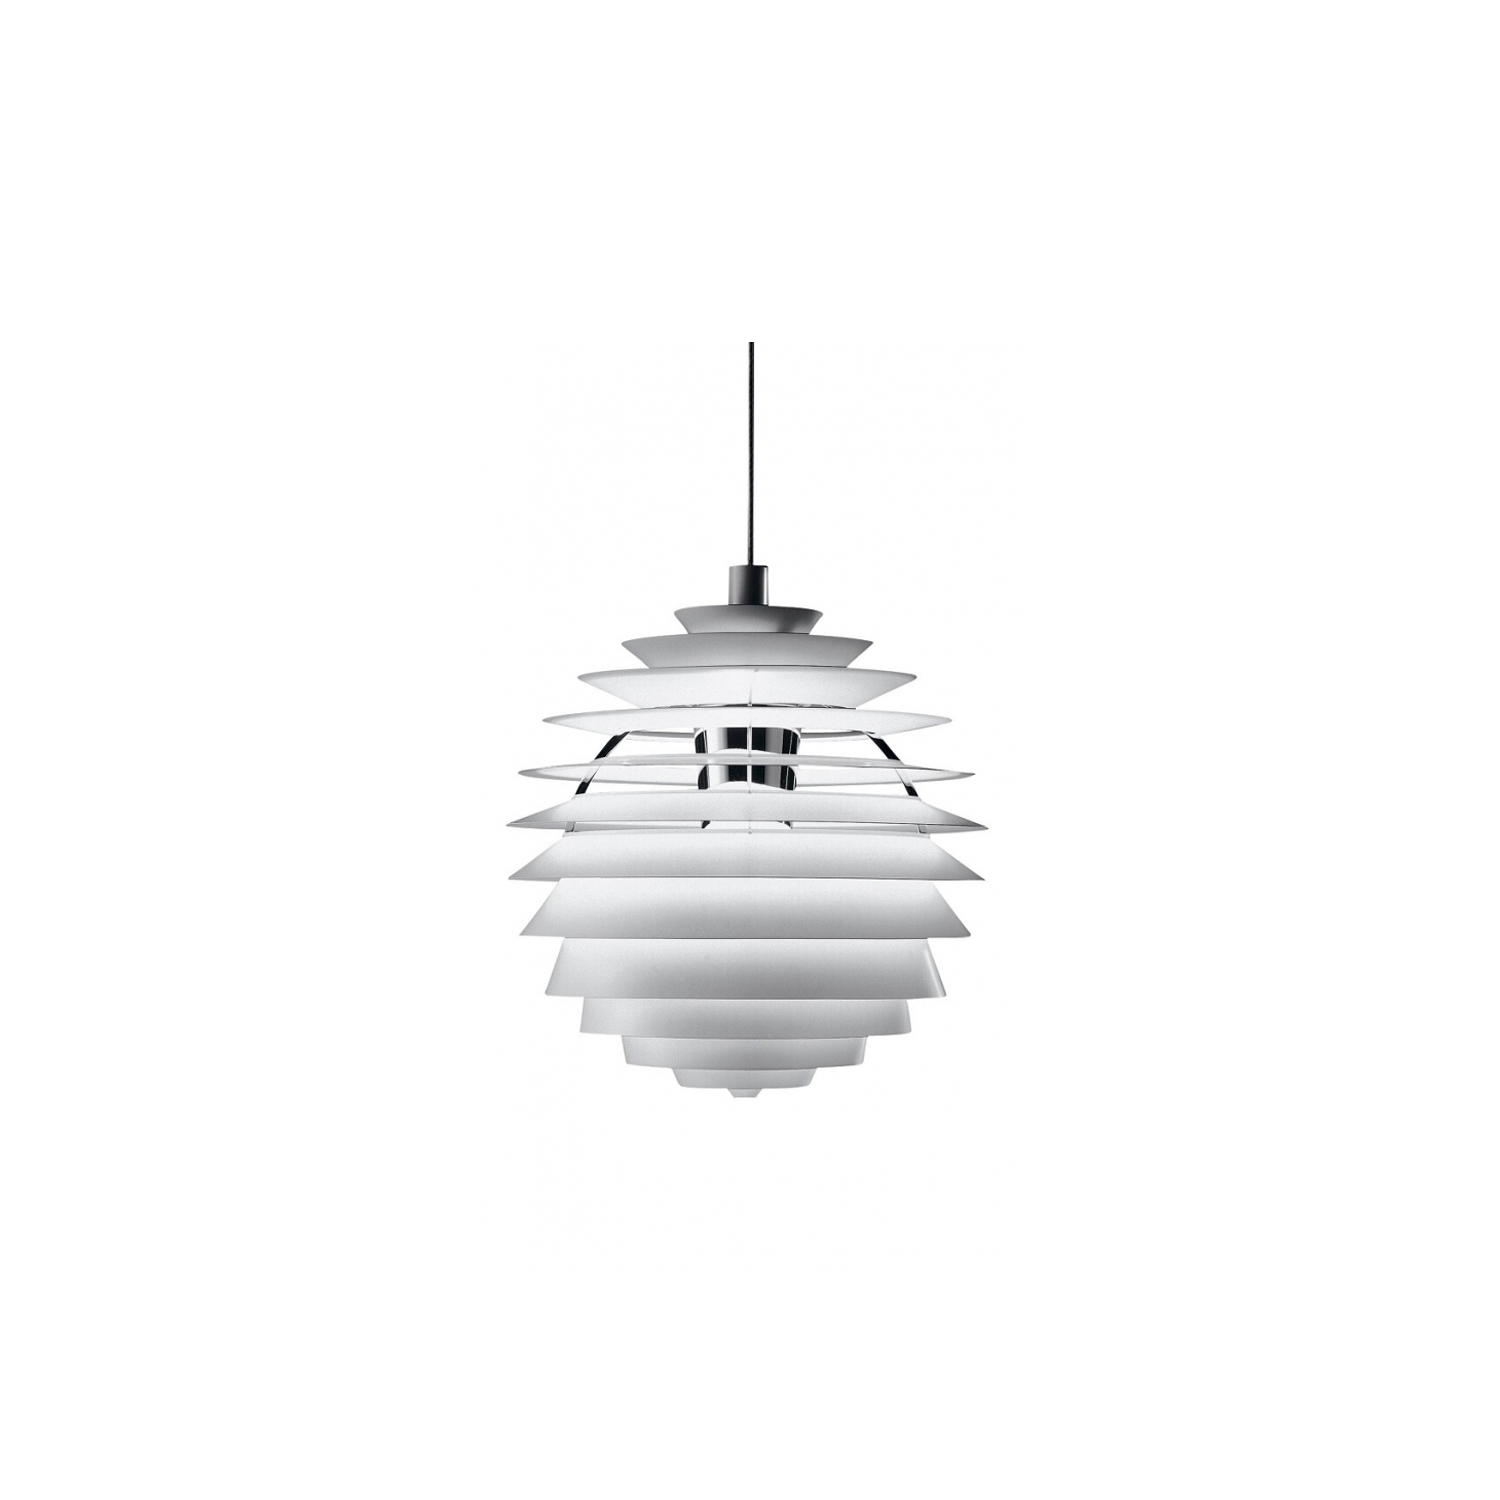 PH Louvre Pendant Lamp - The fixture provides 100% glare-free light. The geometrical, spherical design is based on the principle of illuminating all surfaces at the same angle. This ensures uniform light around the fixture, illuminating both walls and ceiling. Matt painted undersurfaces and glossy top surfaces result in an attractive reflection of the diffused light, creating uniform light distribution around the fixture.   | Matter of Stuff